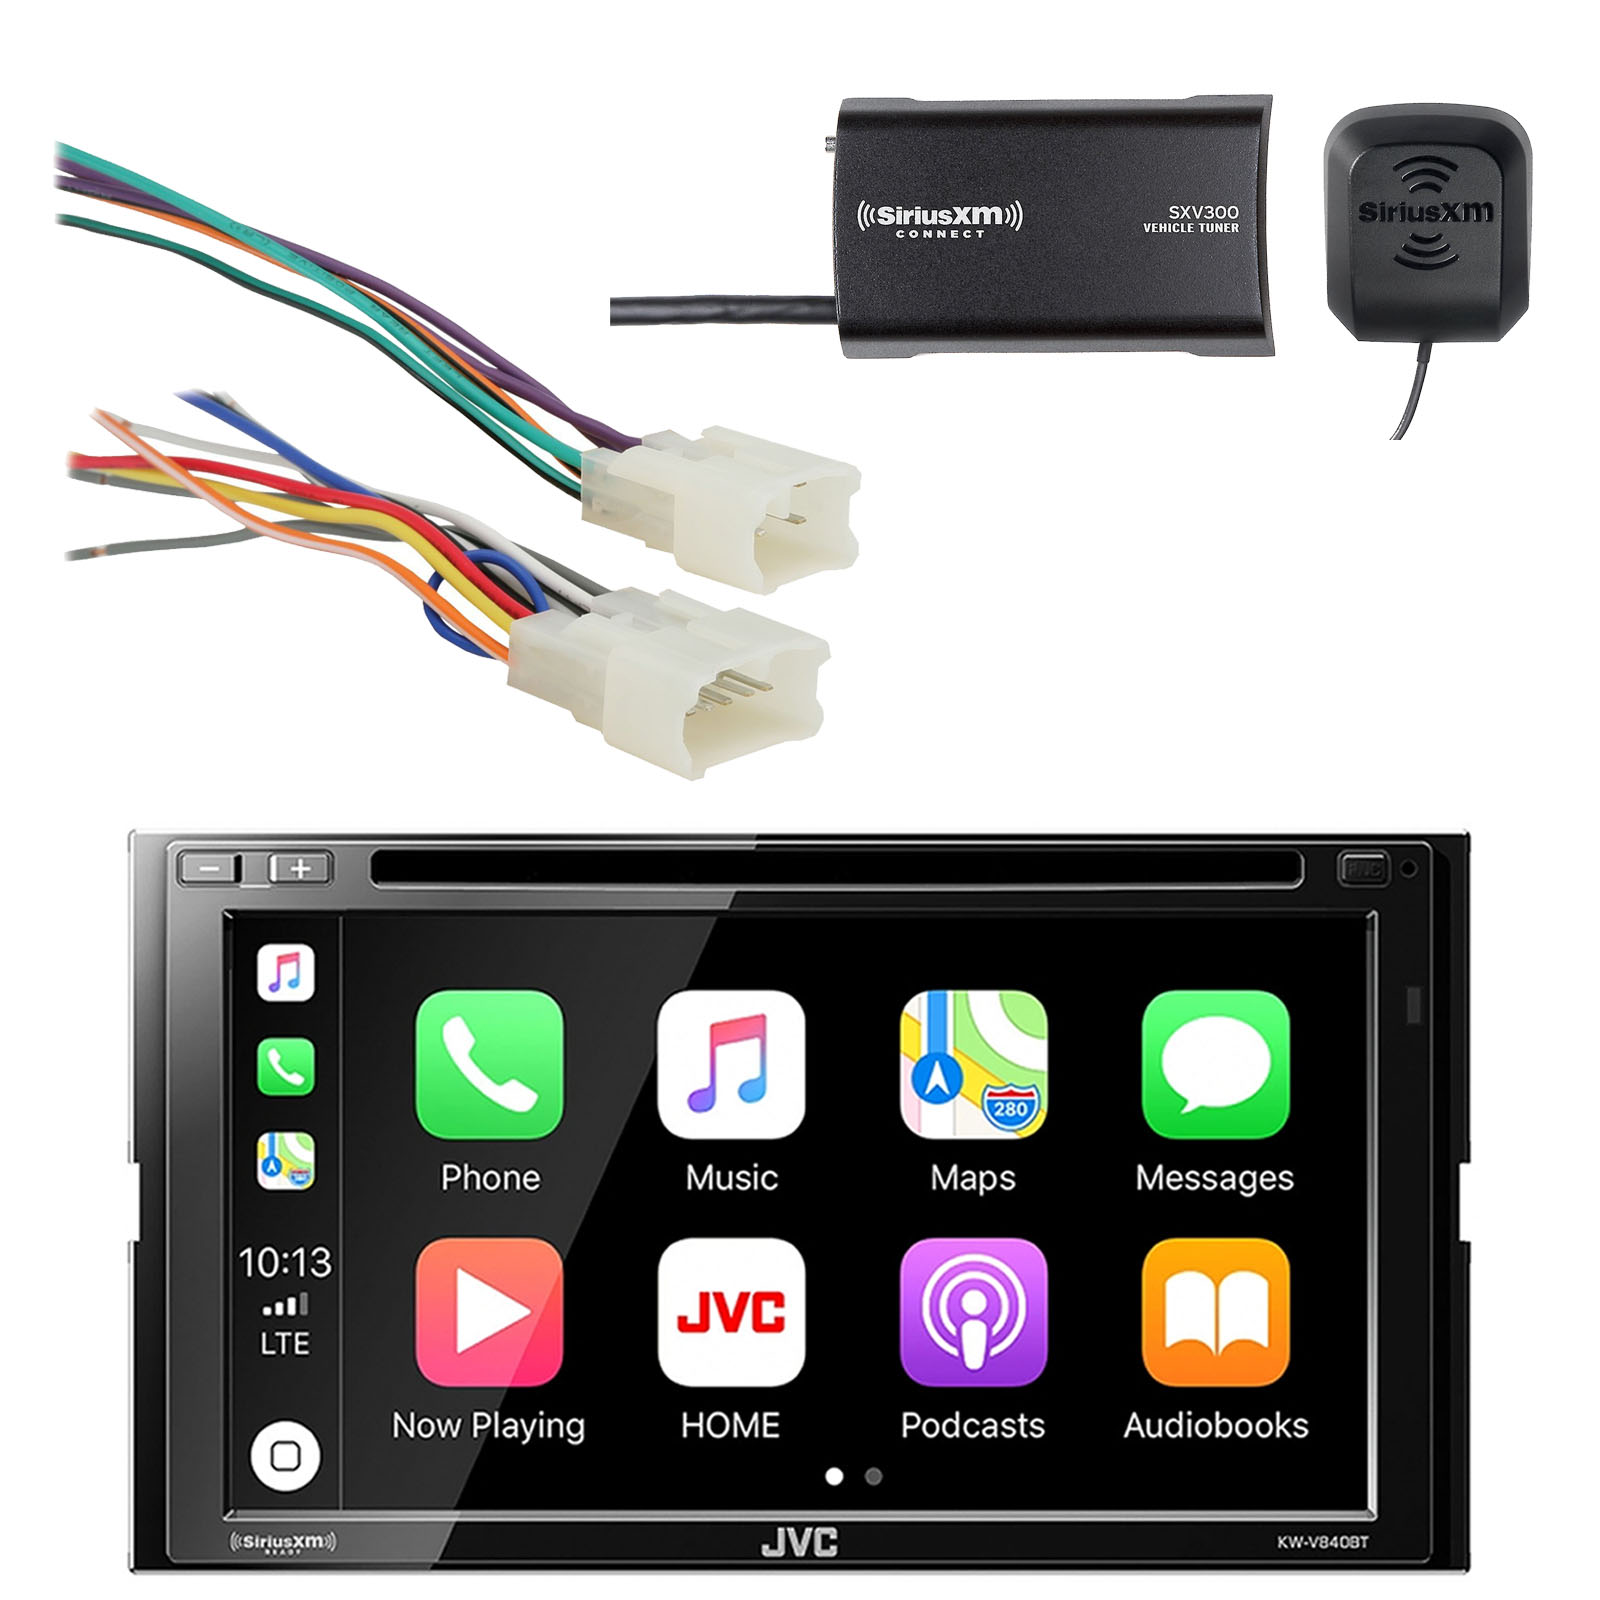 JVC 6.8 Inch LCD Touchscreen Double DIN Bluetooth In-Dash DVD/CD/AM/FM Car Stereo Receiver with Metra Radio Wiring Harness For Toyota 87-Up Power 4 Speaker & SiriusXM Satellite Radio Vehicle Tuner Kit